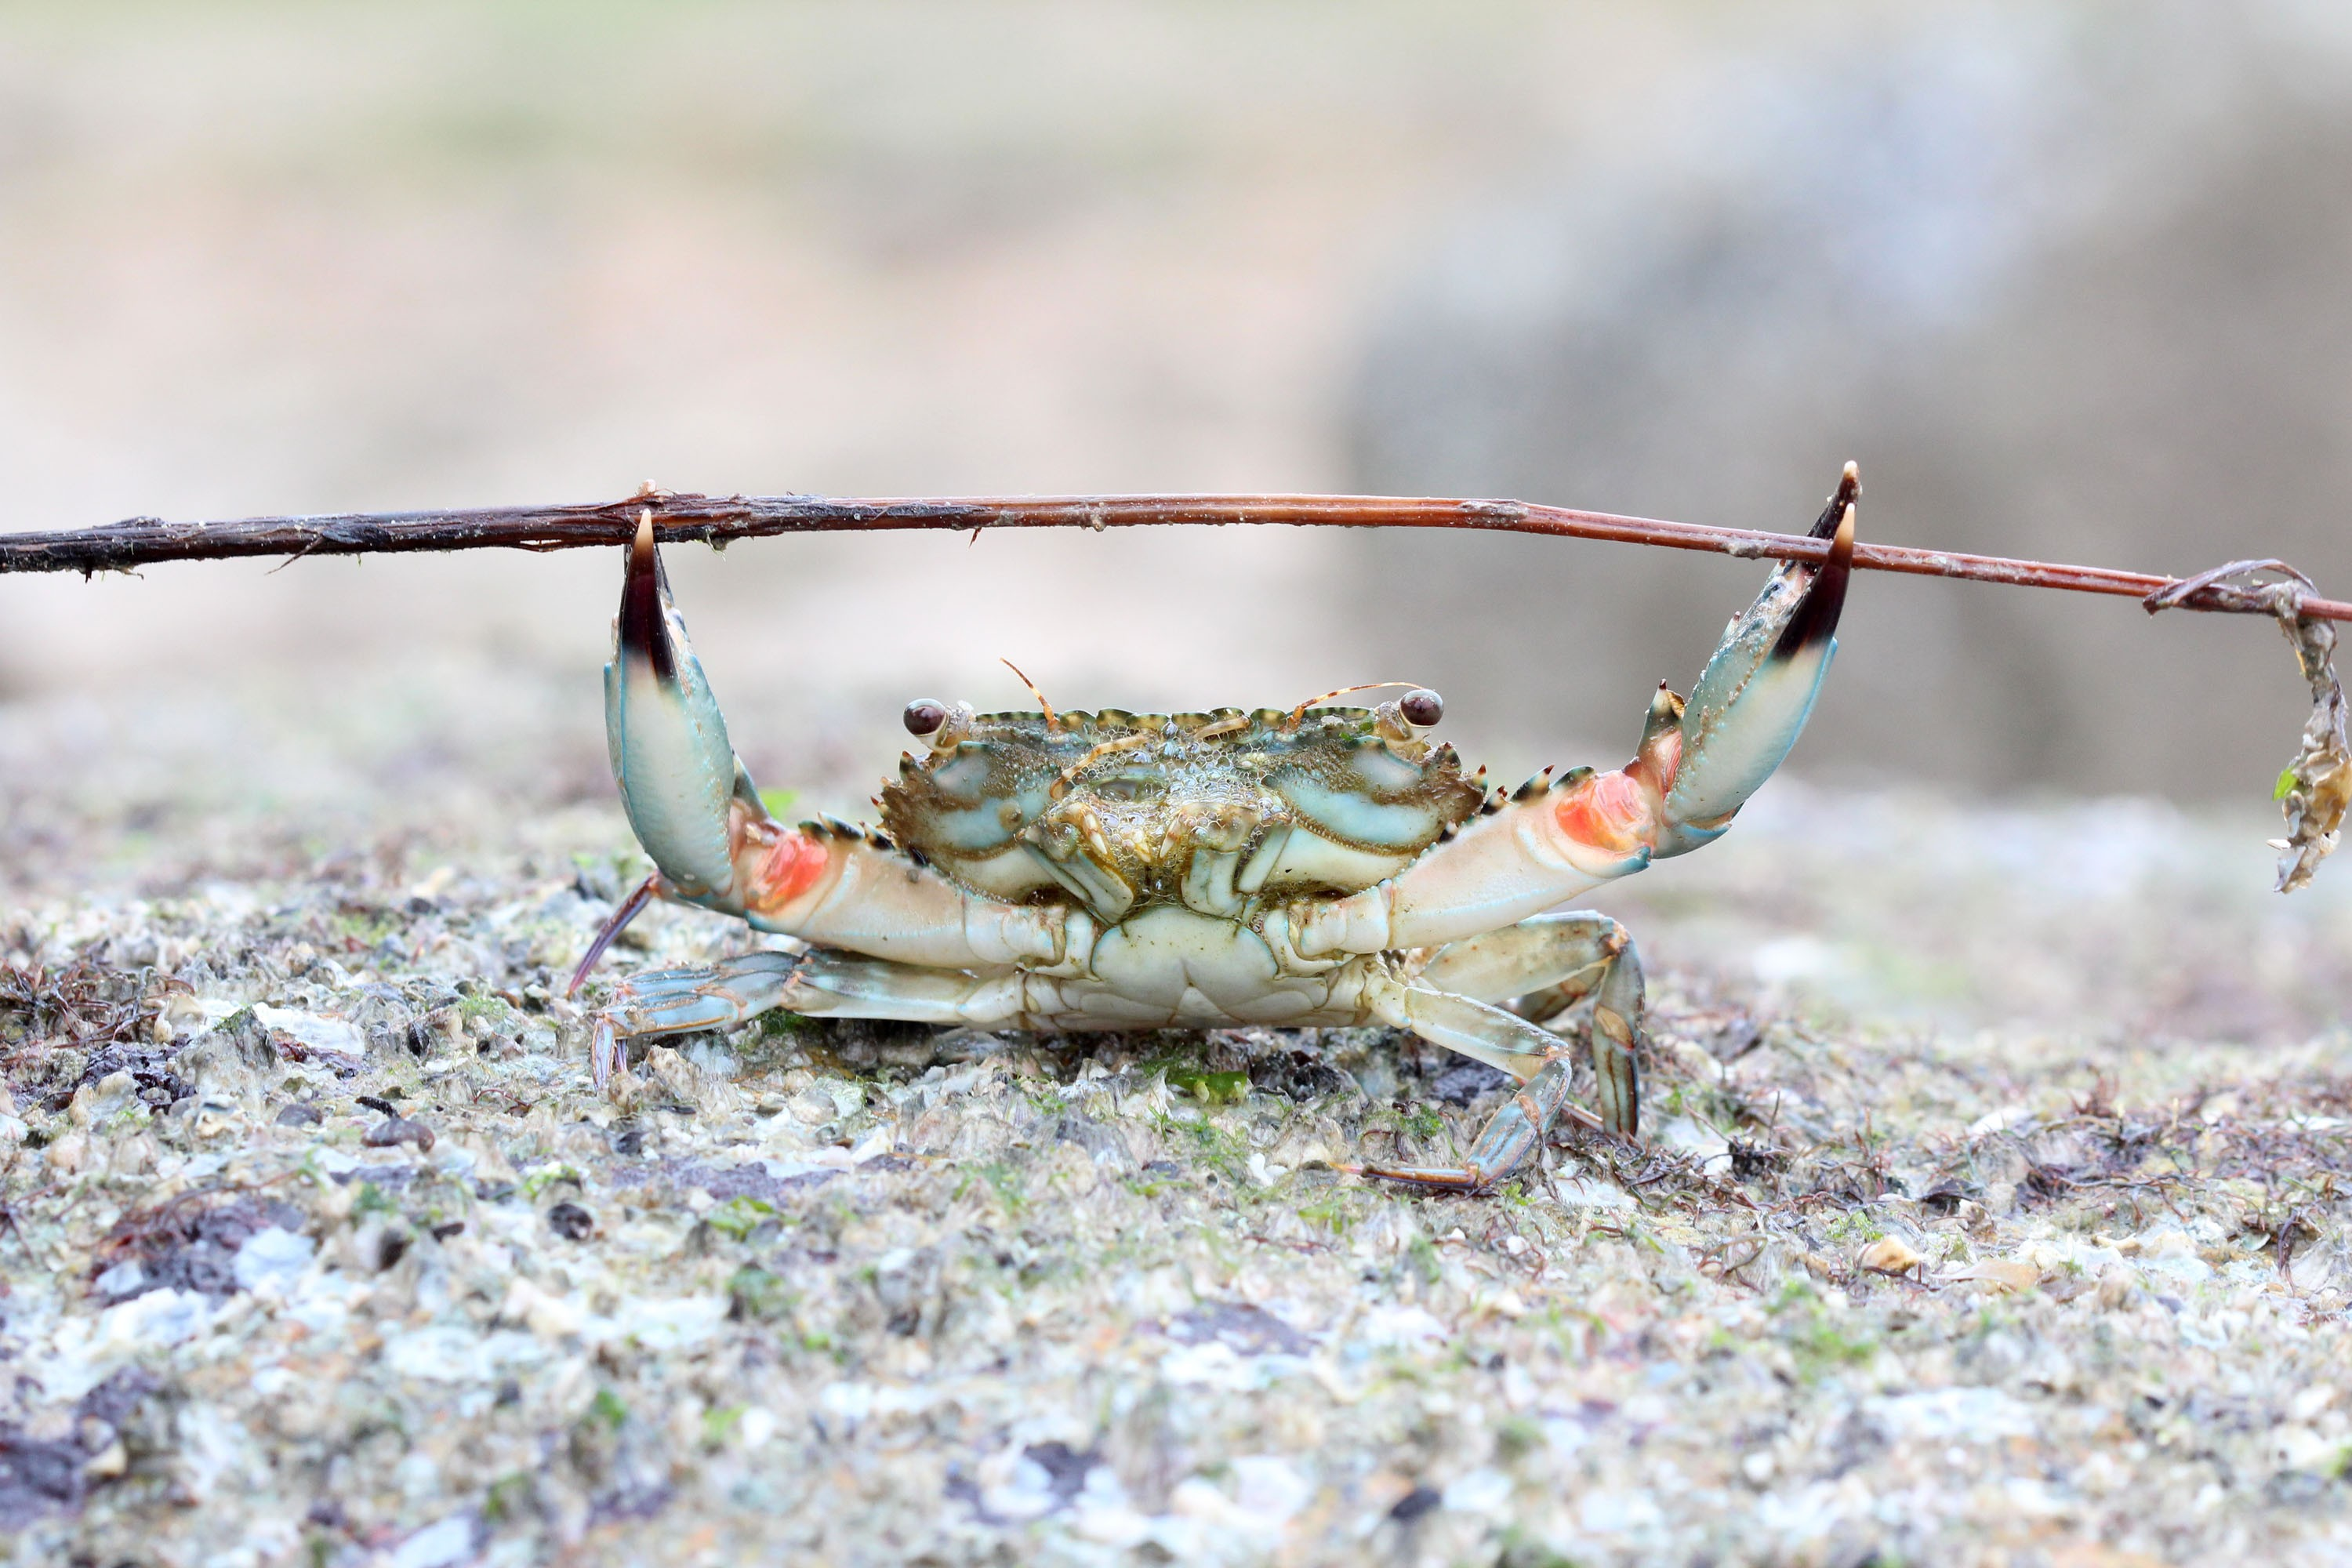 Crab by Goh Teck Leong